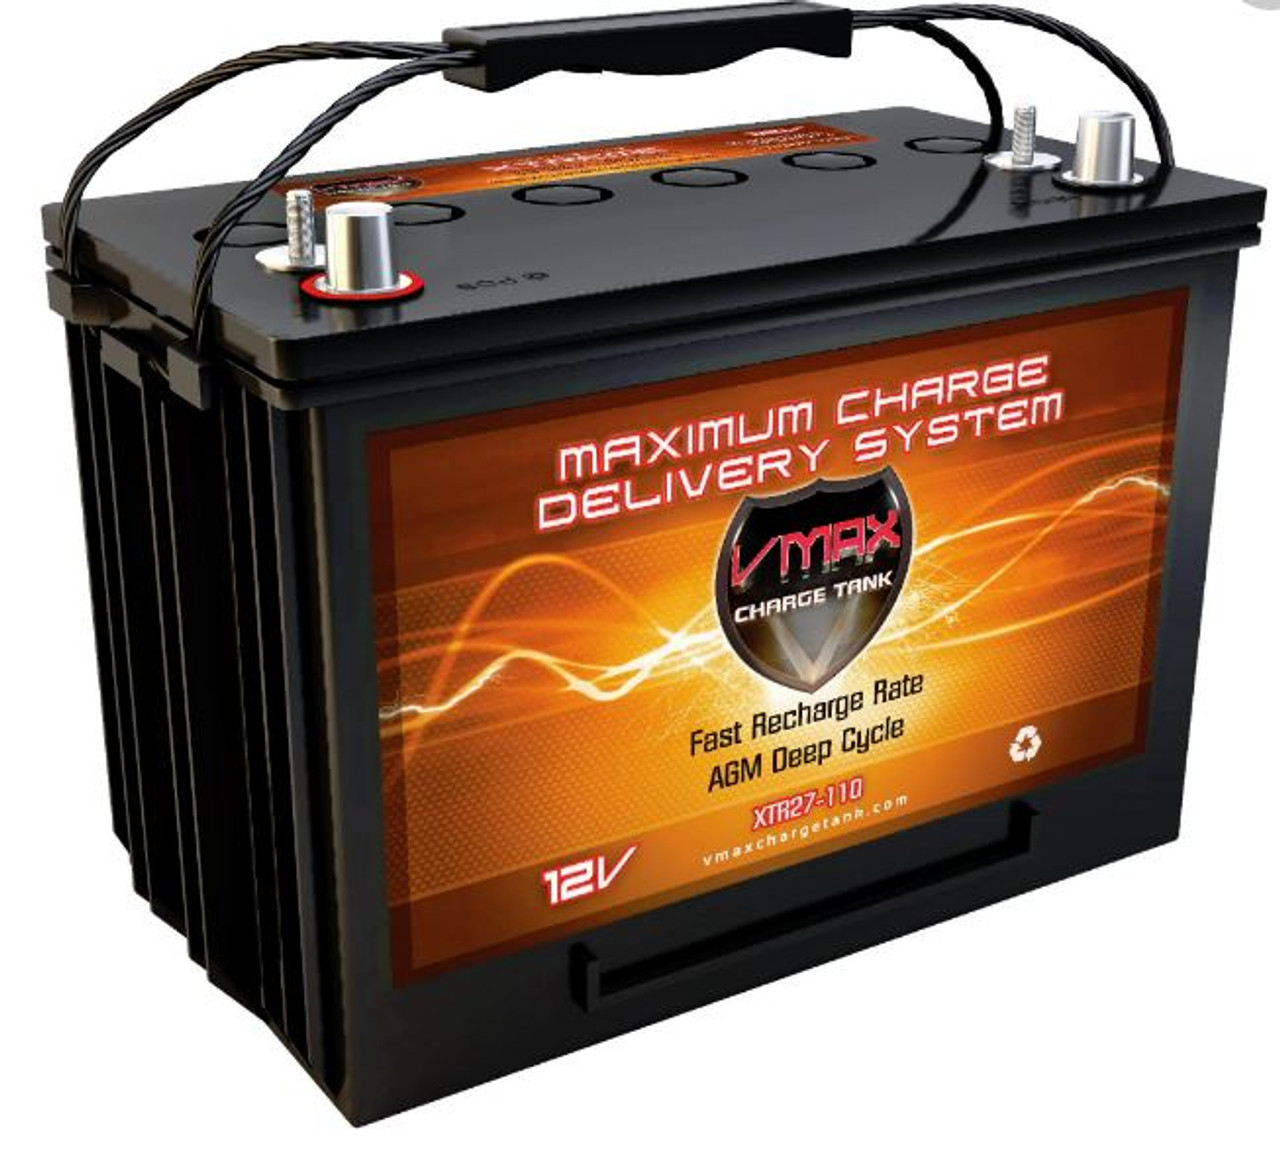 VMAX Charge Tank XTR27-110 12Volts 110AH Deep Cycle, XTREME AGM Battery